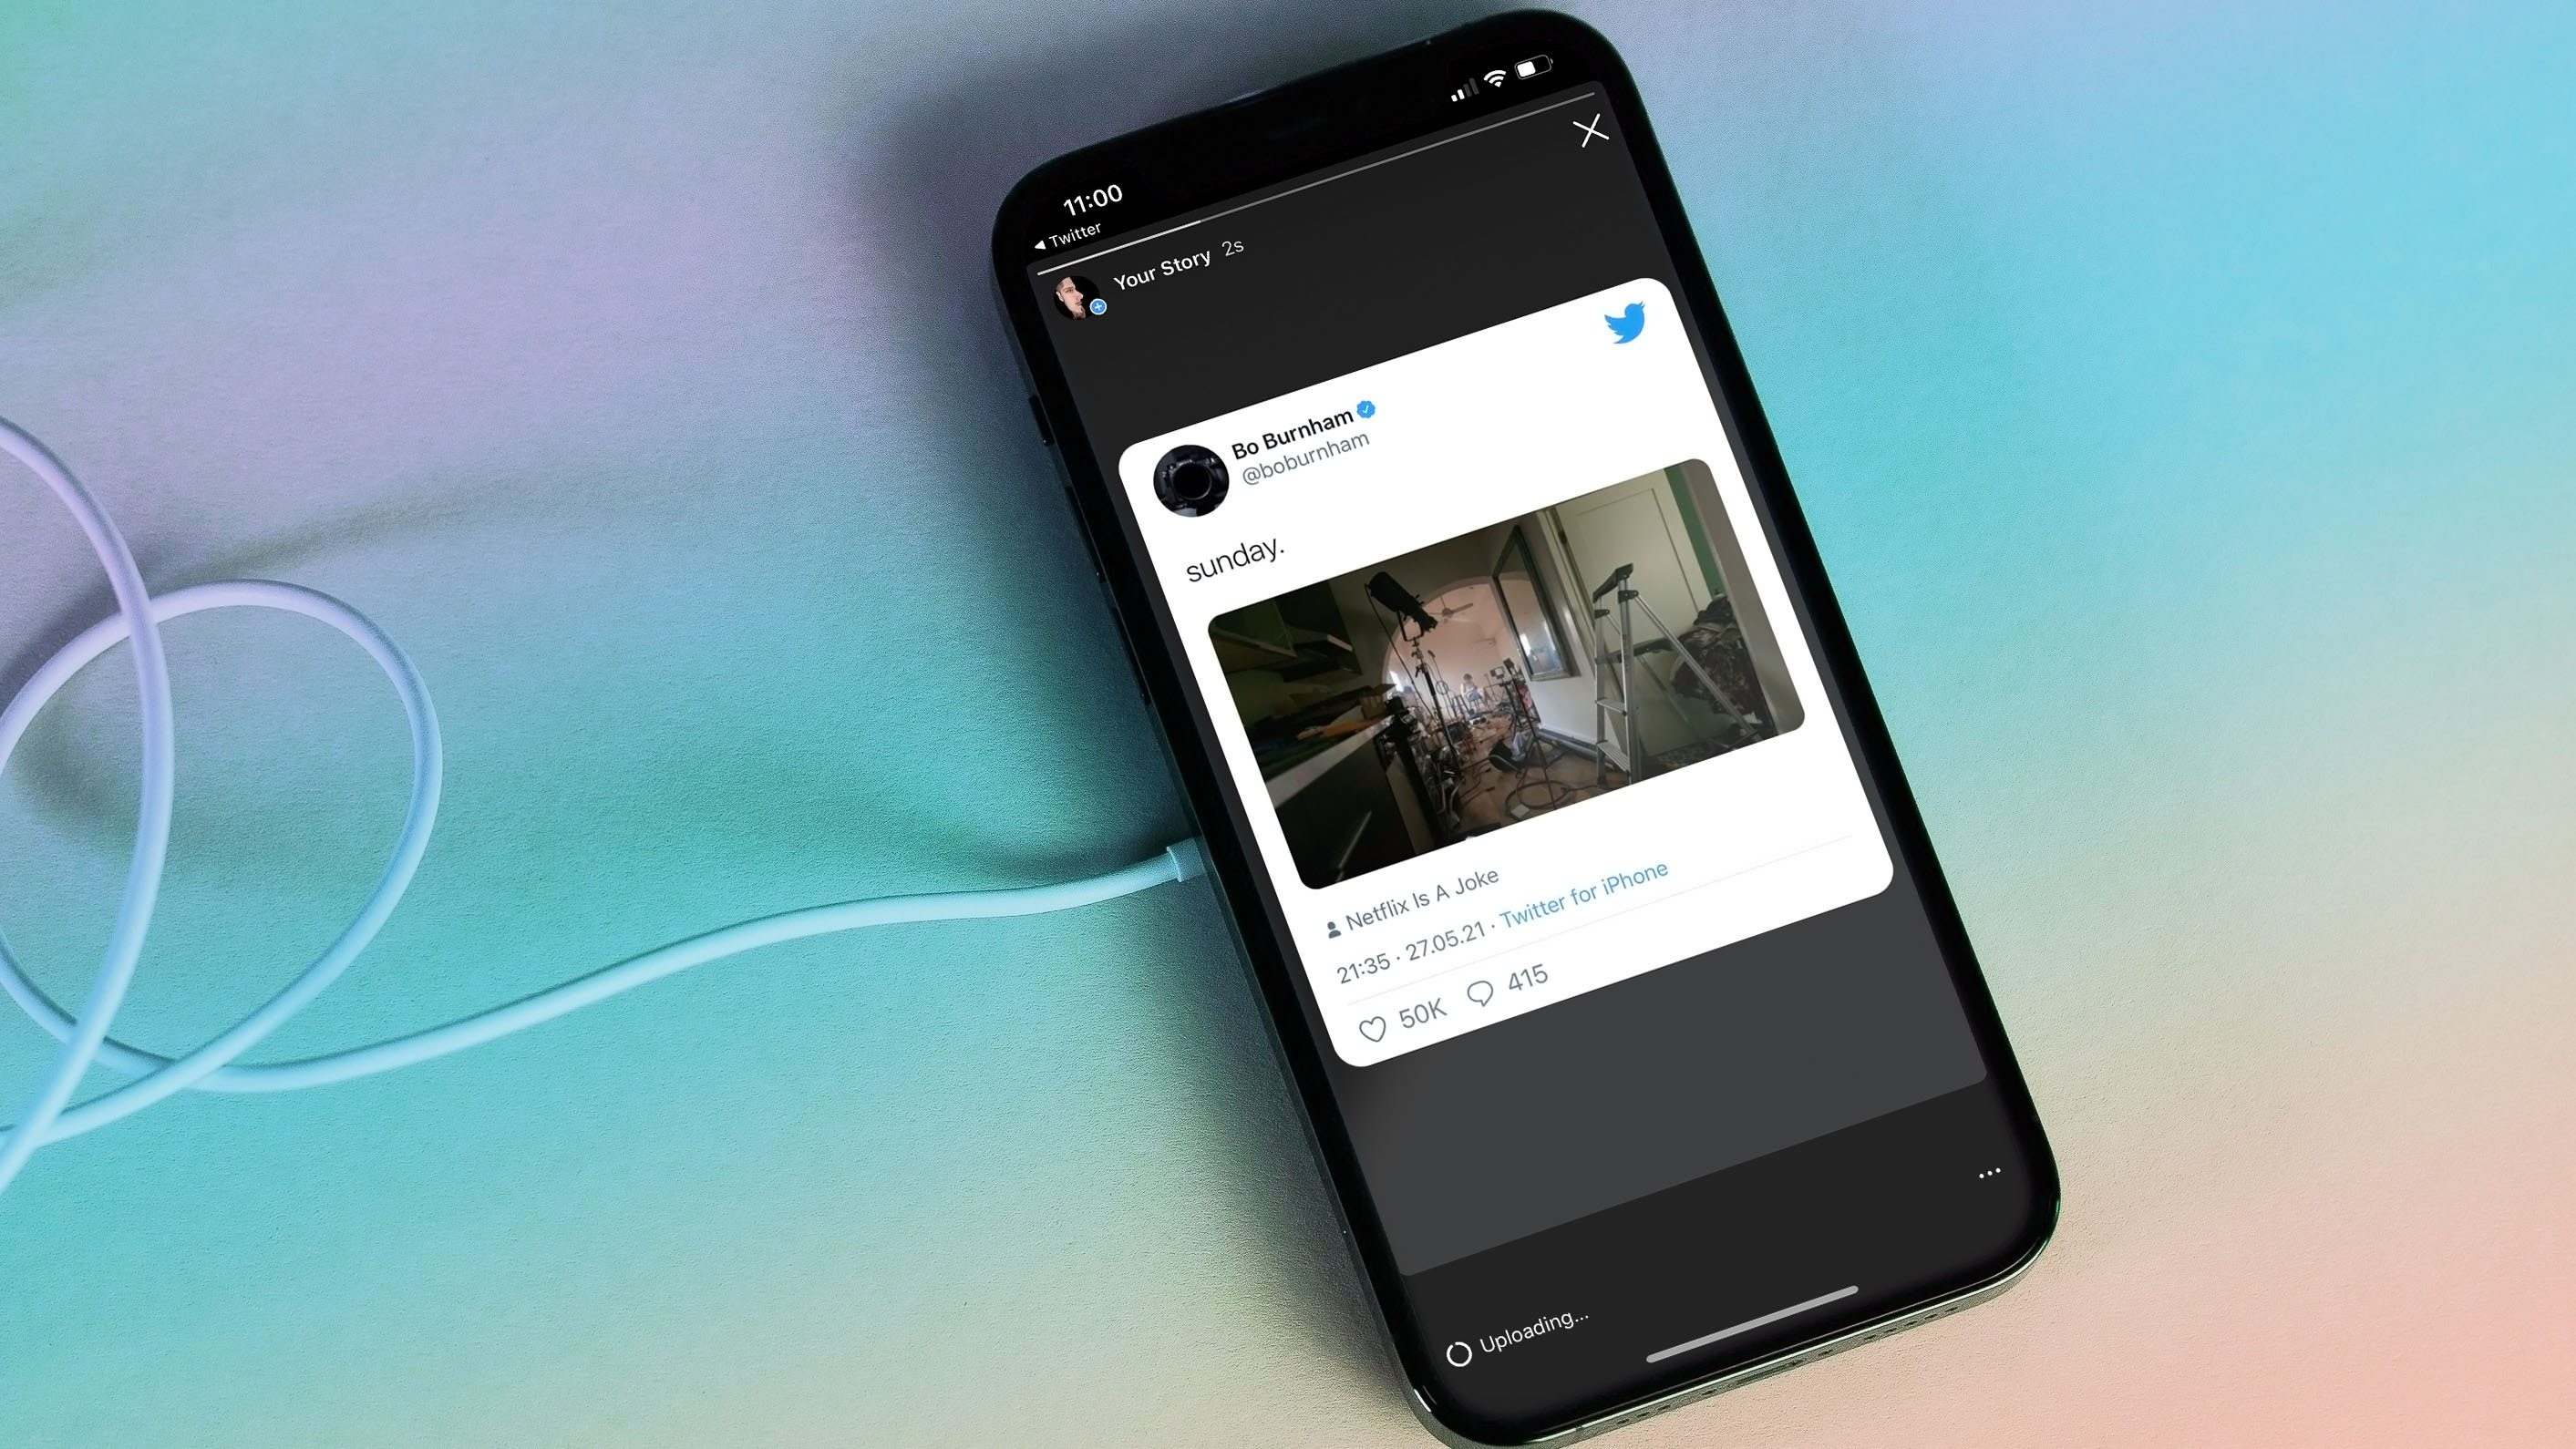 How to share your tweets as Instagram Stories on iPhone